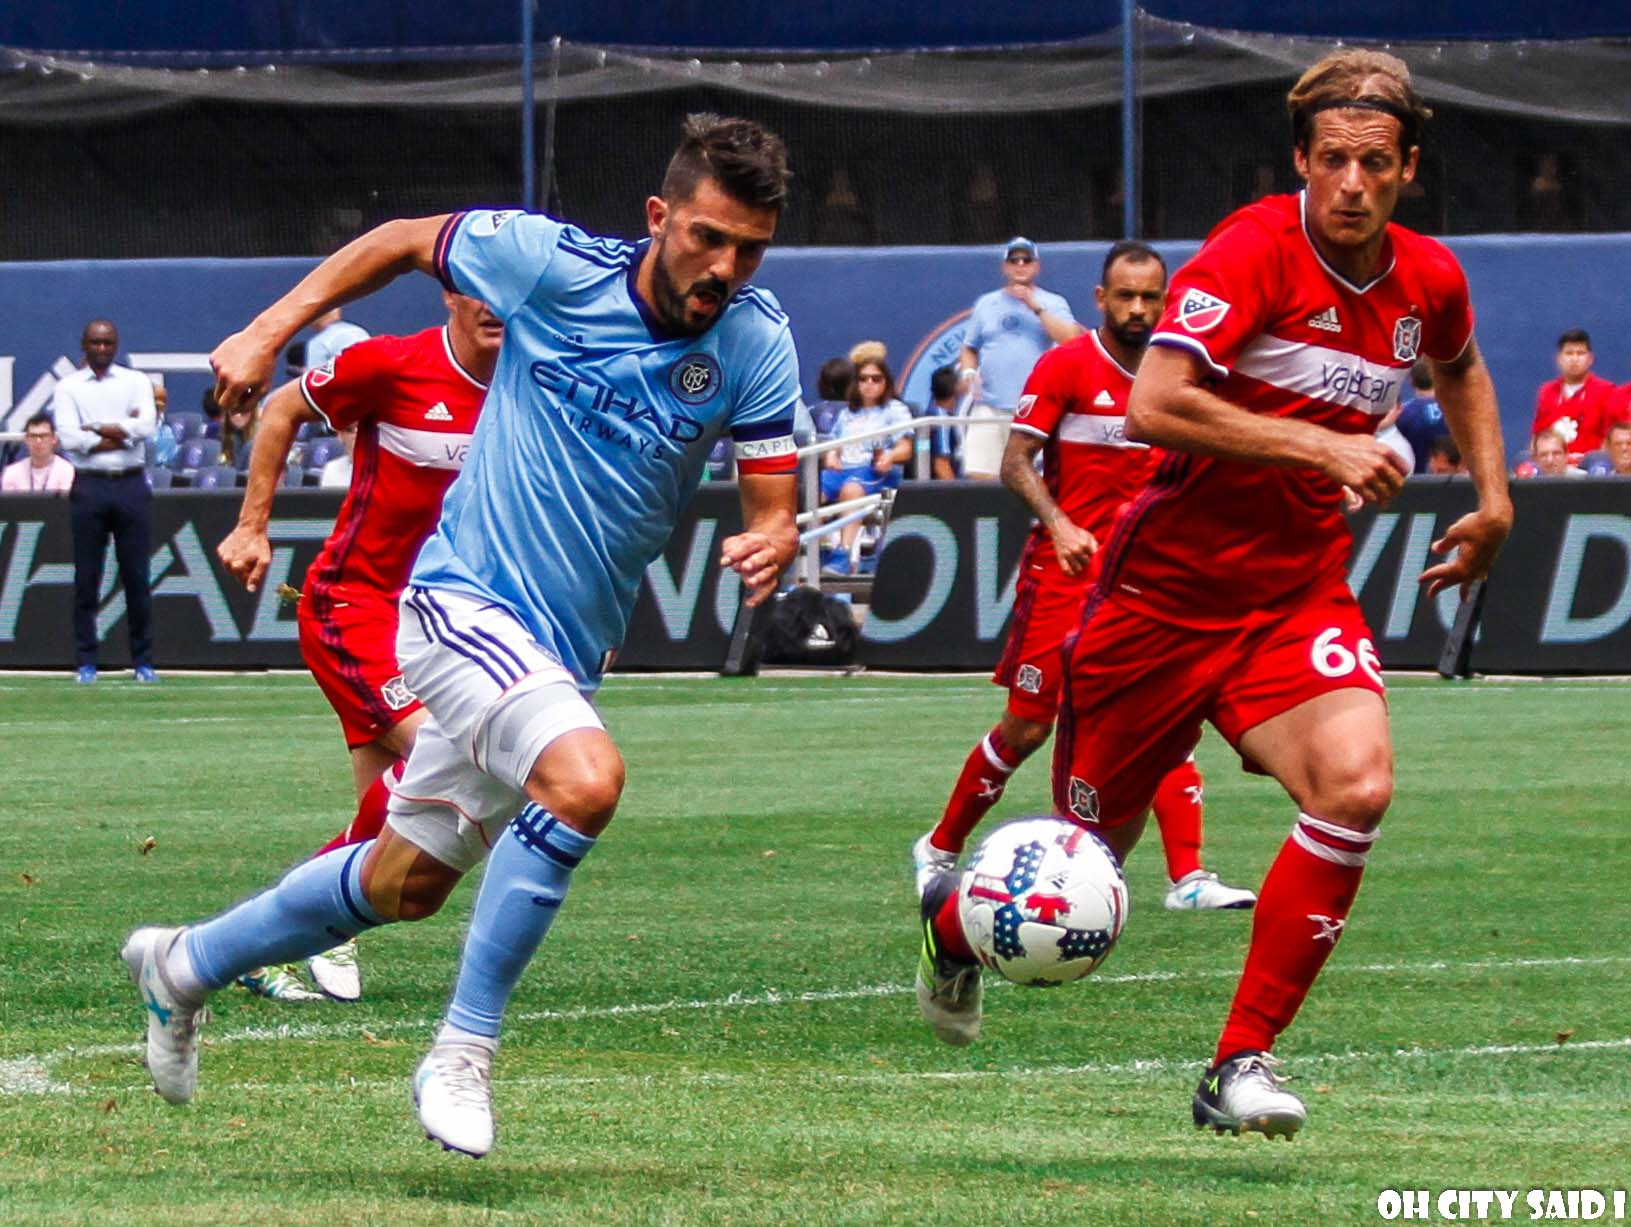 Despite playing most of the match with 10 men, NYCFC managed to pull off the win against Toronto FC